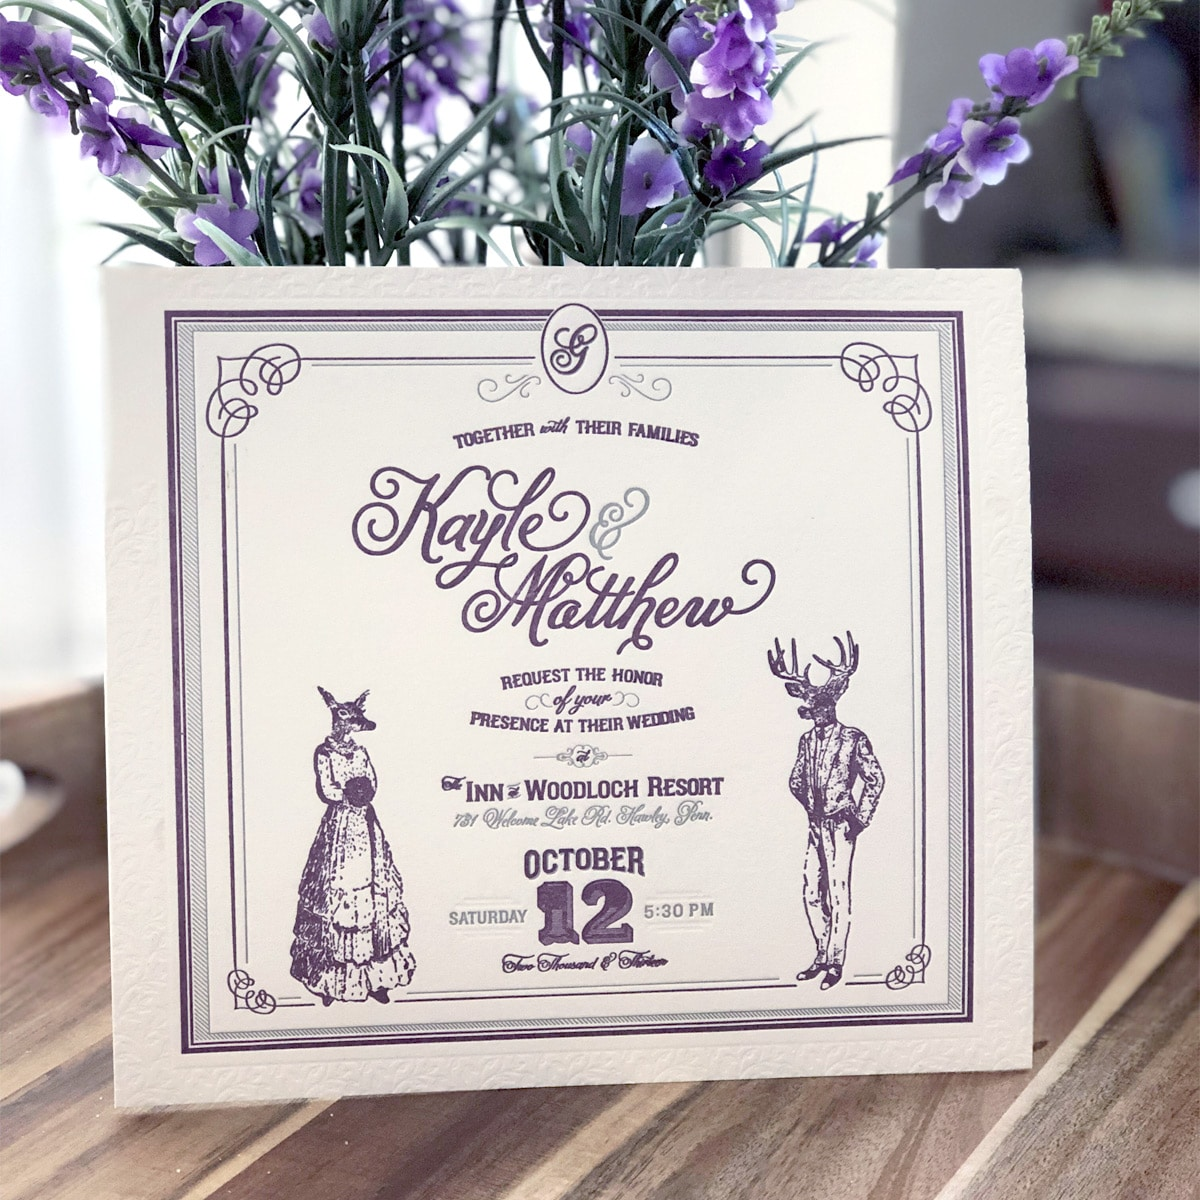 raleigh graphic designer retro vintage wedding invitation design